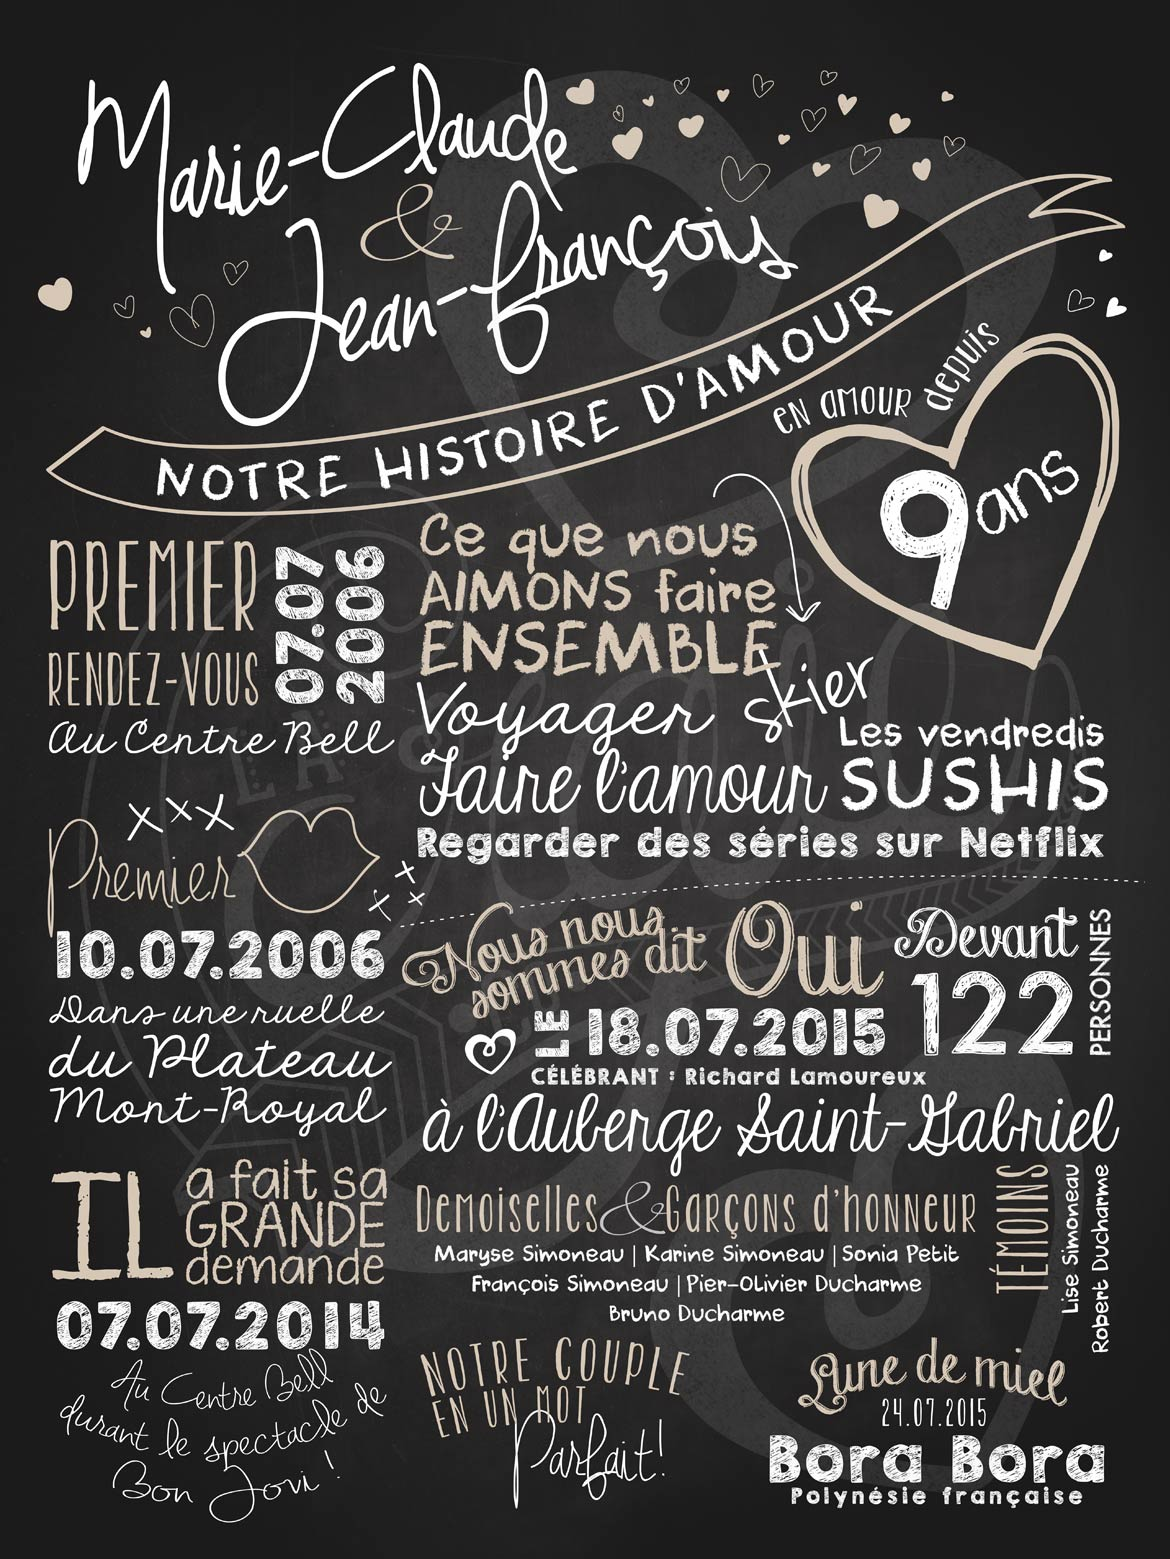 affiche de mariage notre histoire d 39 amour la craie co. Black Bedroom Furniture Sets. Home Design Ideas